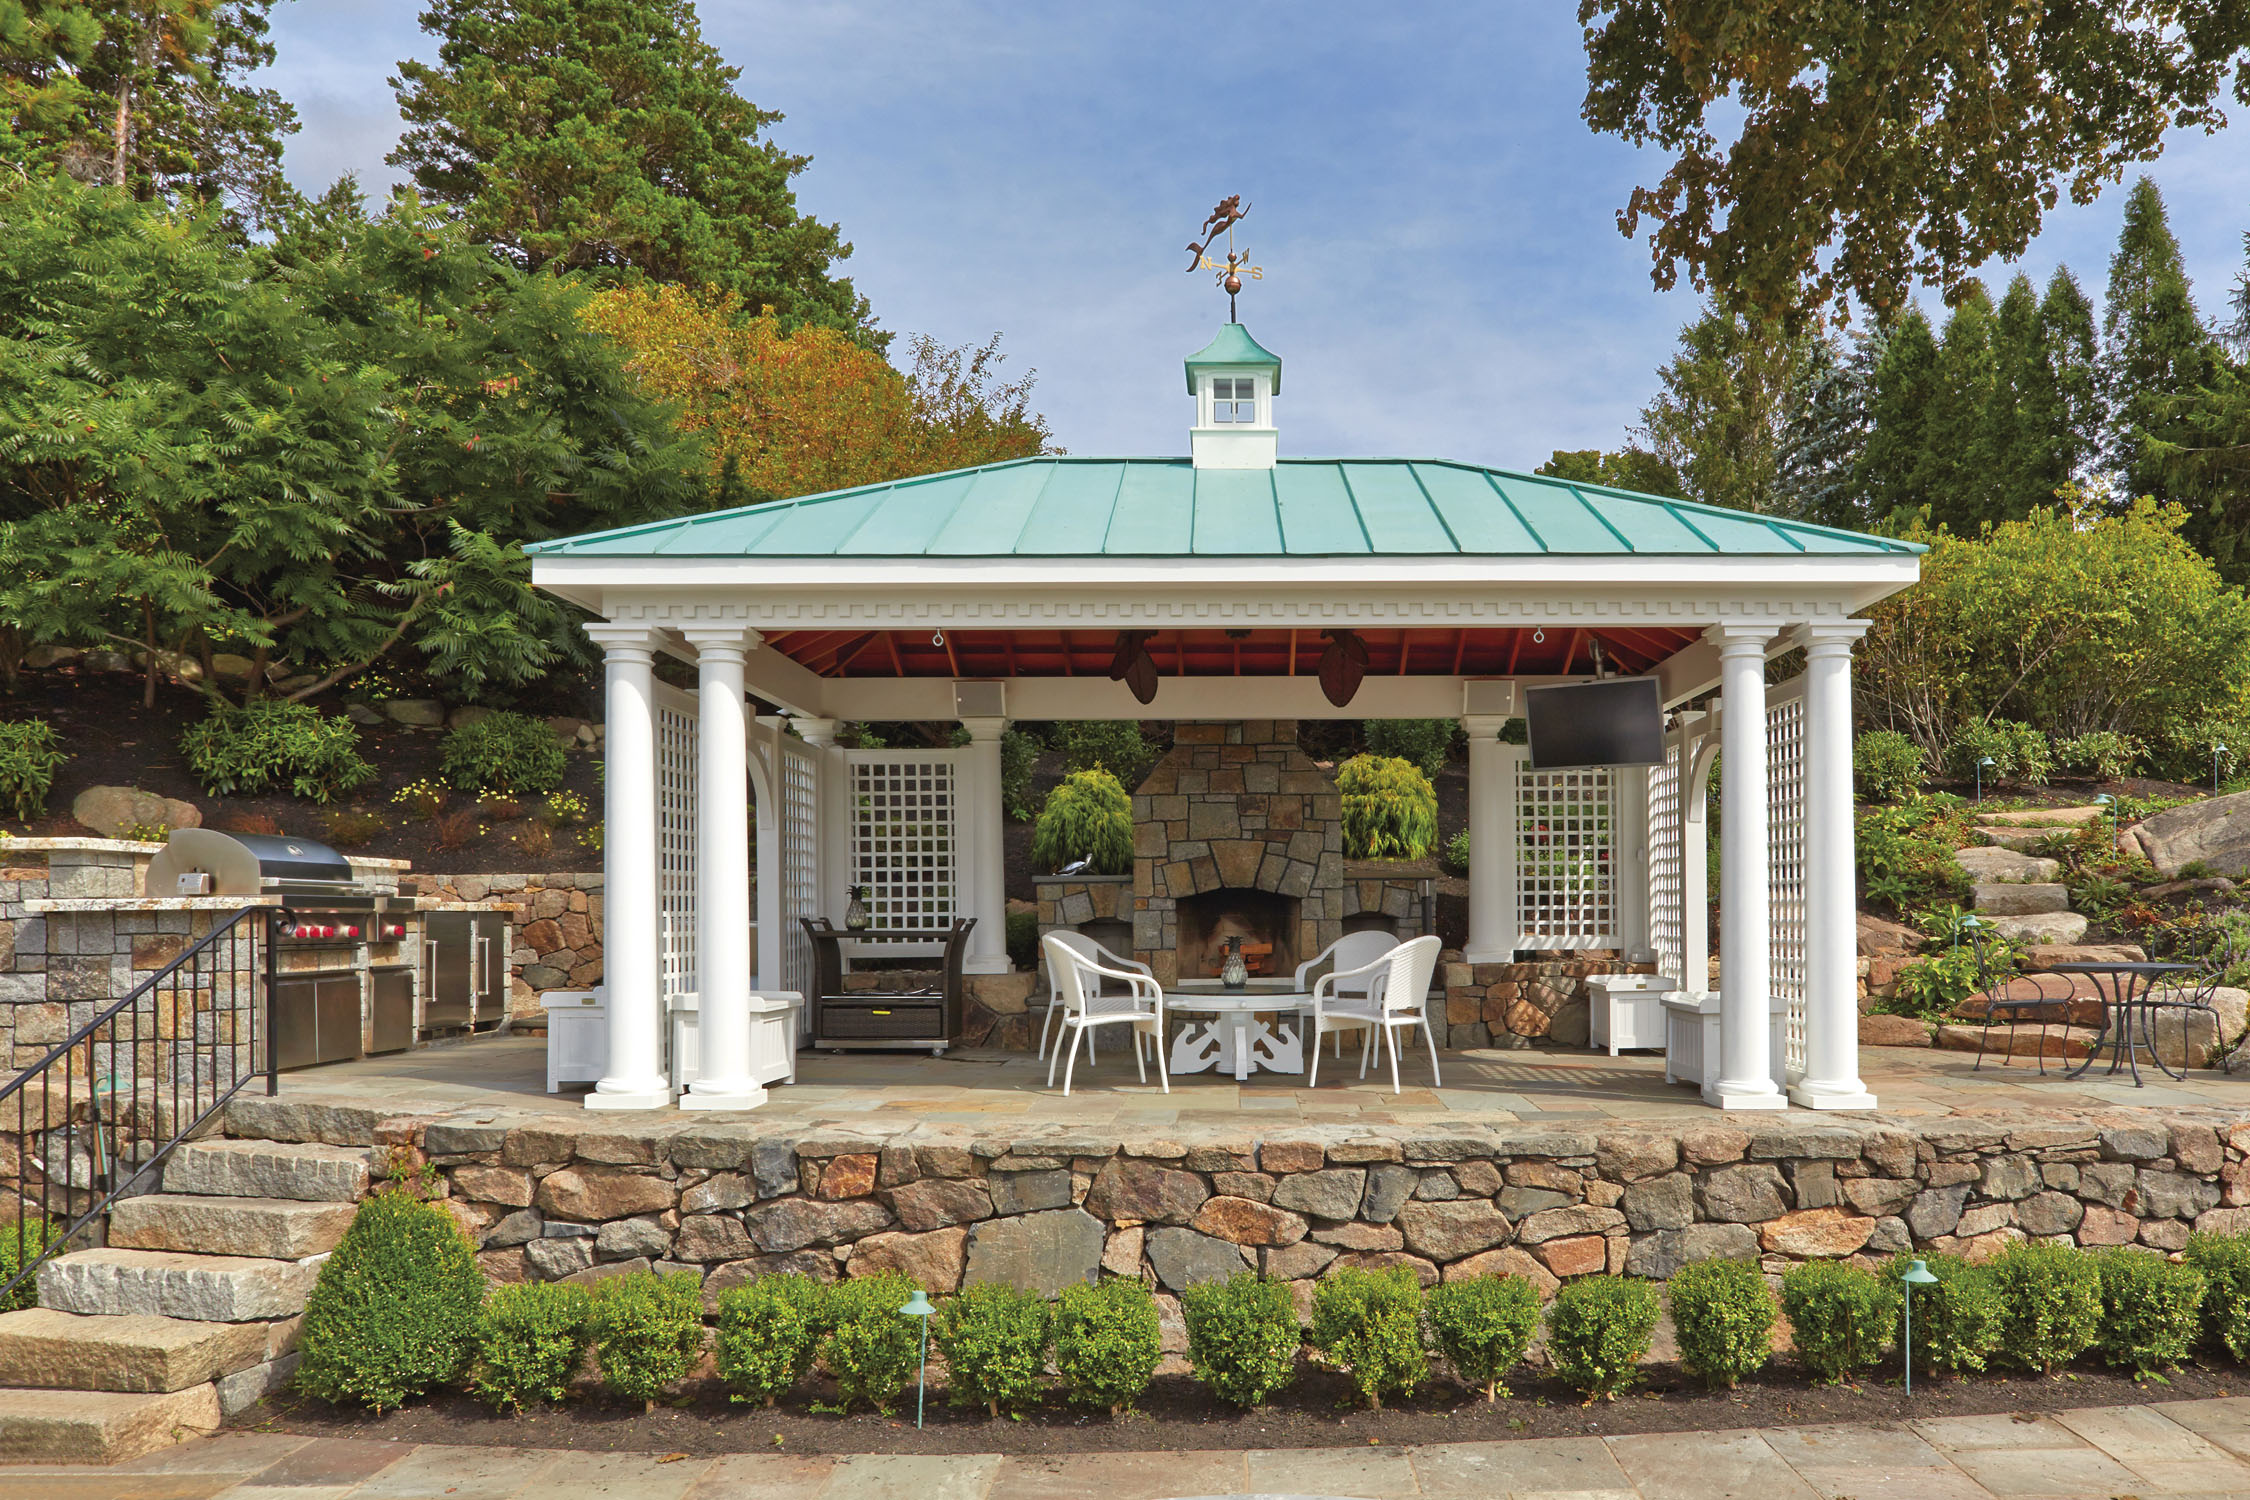 Walpole outdoors launches new line of outdoor pavilions for Walpole outdoors